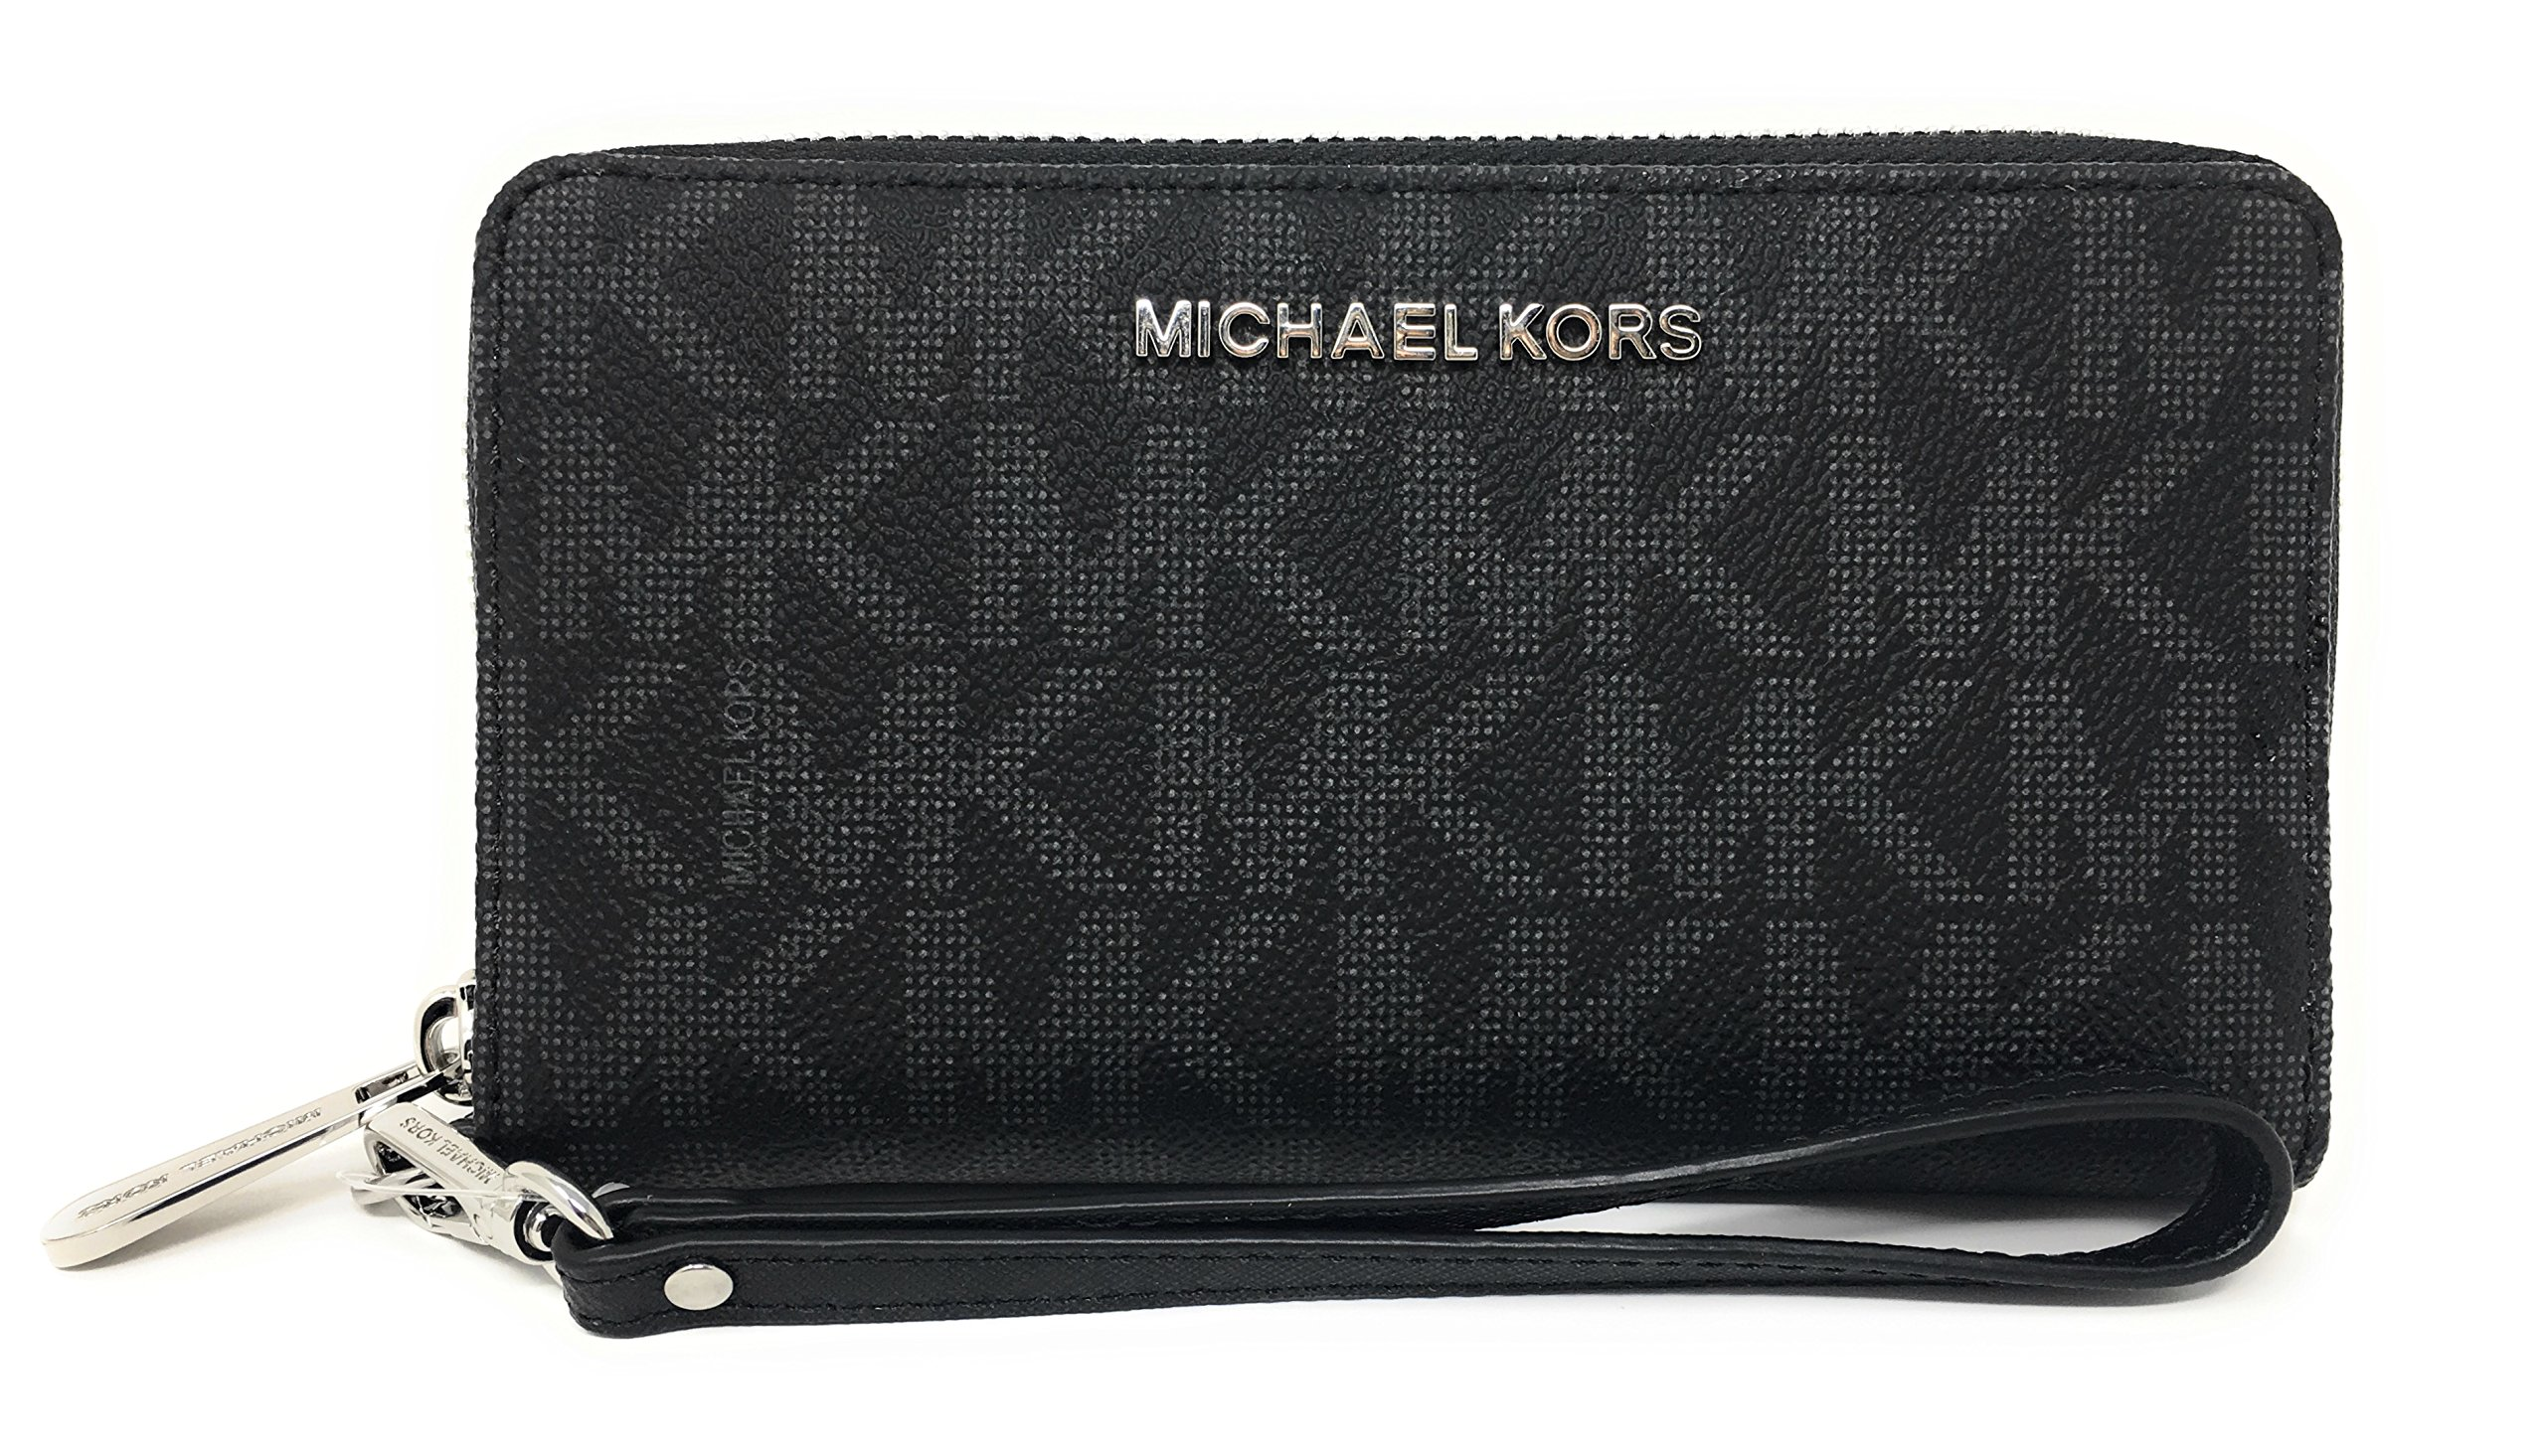 Michael Kors Jet Set Travel Large Flat Multifunction Phone Case Wristlet (Black)